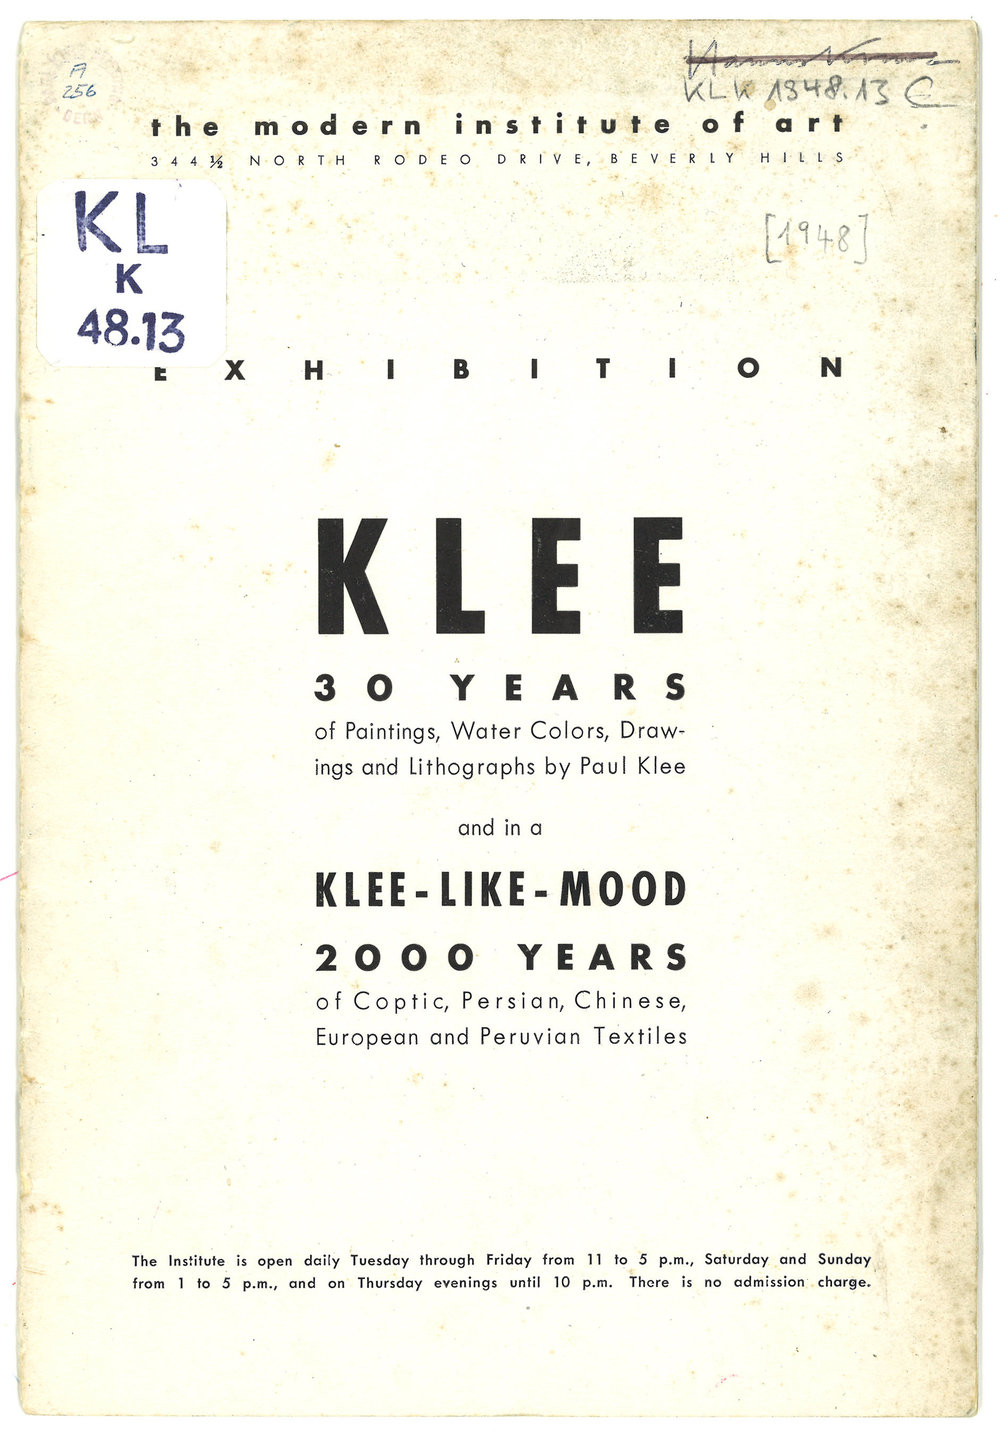 Abb. 2 Klee. 30 Years of Paintings, Water Colors, Drawings and Lithographs - and in a Klee-like-mood 2000 Years of Coptic, Persian, Chinese, European and Peruvian Textiles. The Modern Institute of Art, Beverly Hills, 3.9.-6.10.1948, Umschlag. © Zentrum Paul Klee, Bern, Archiv